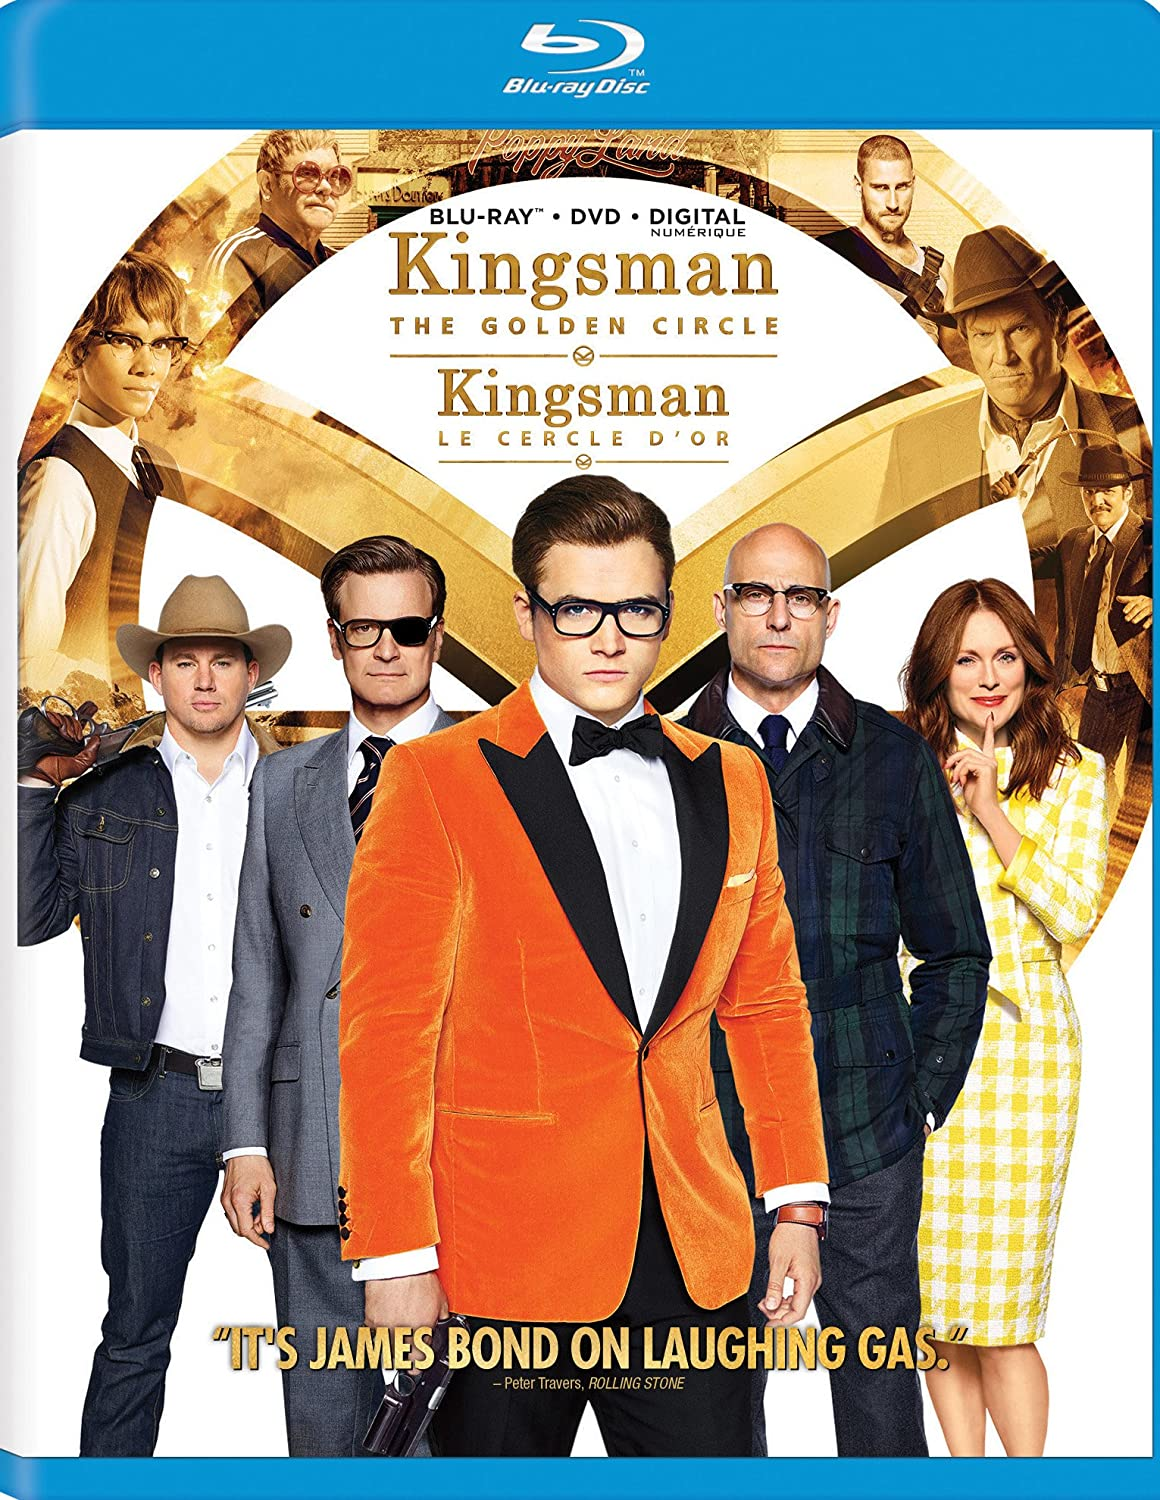 Kingsman 2: The Golden Circle (Bilingual) [Blu-ray + DVD +...